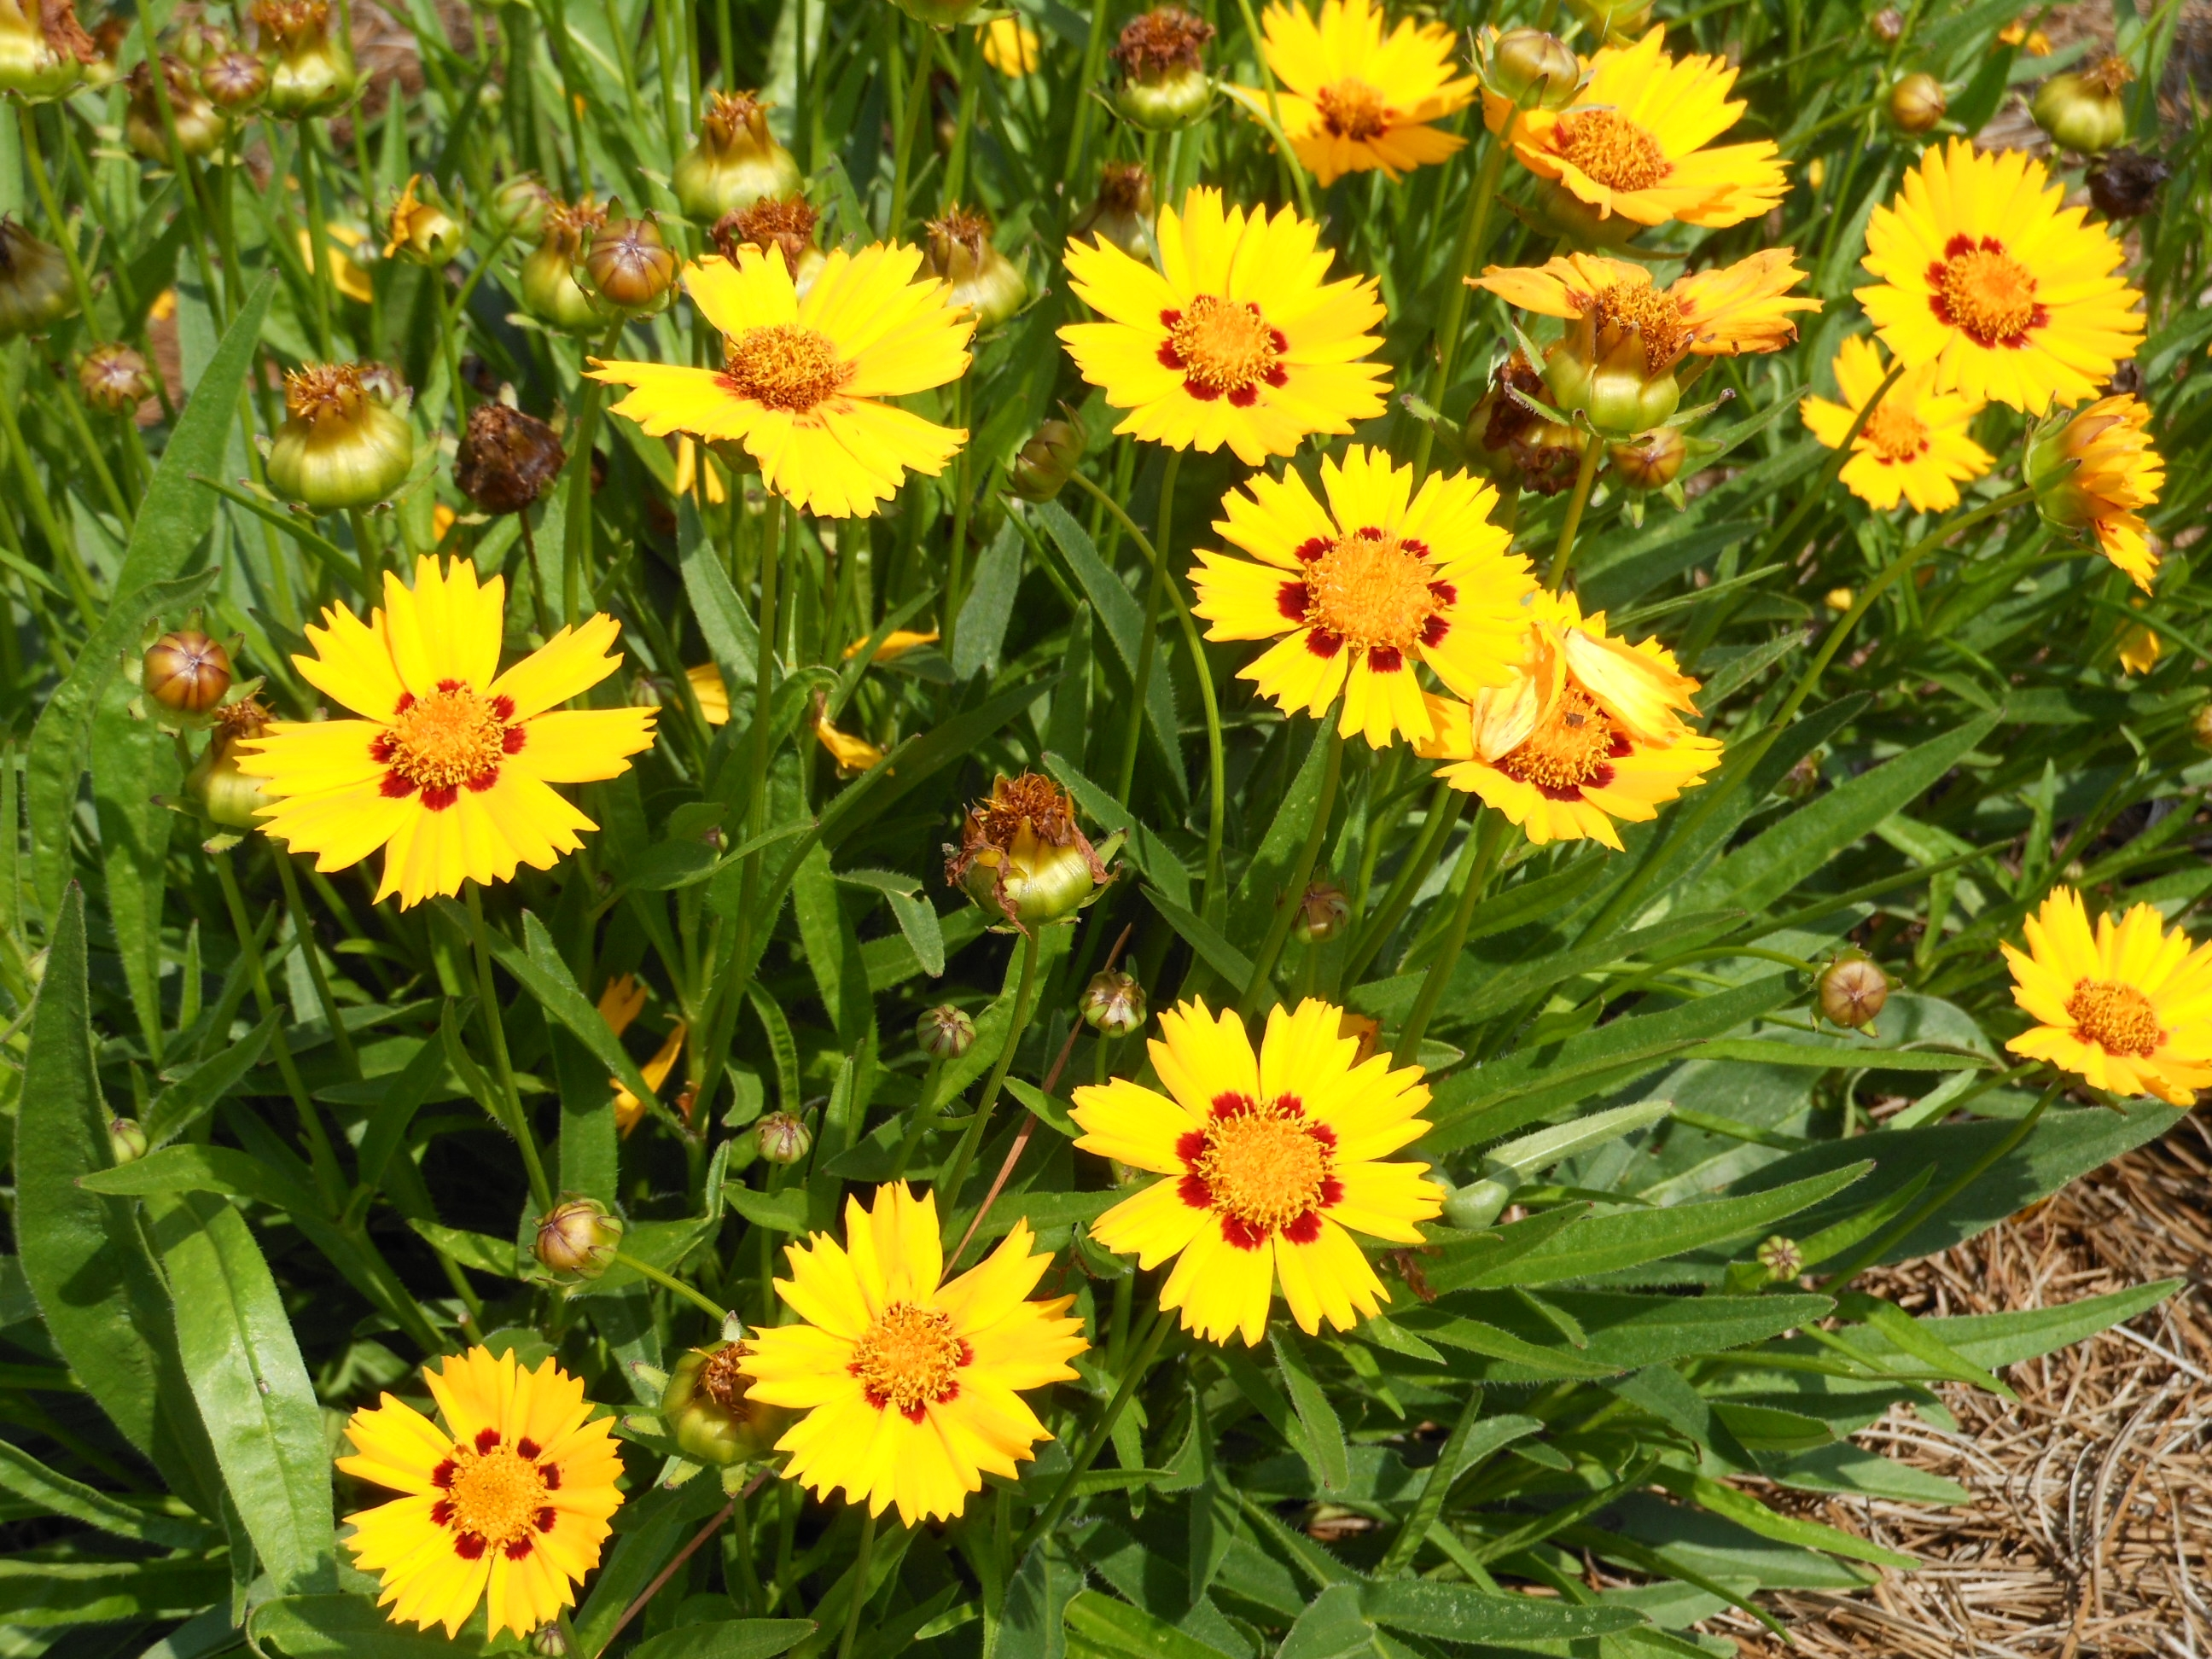 Coreopsis Ornamental Plant Of The Week For April 21 2014